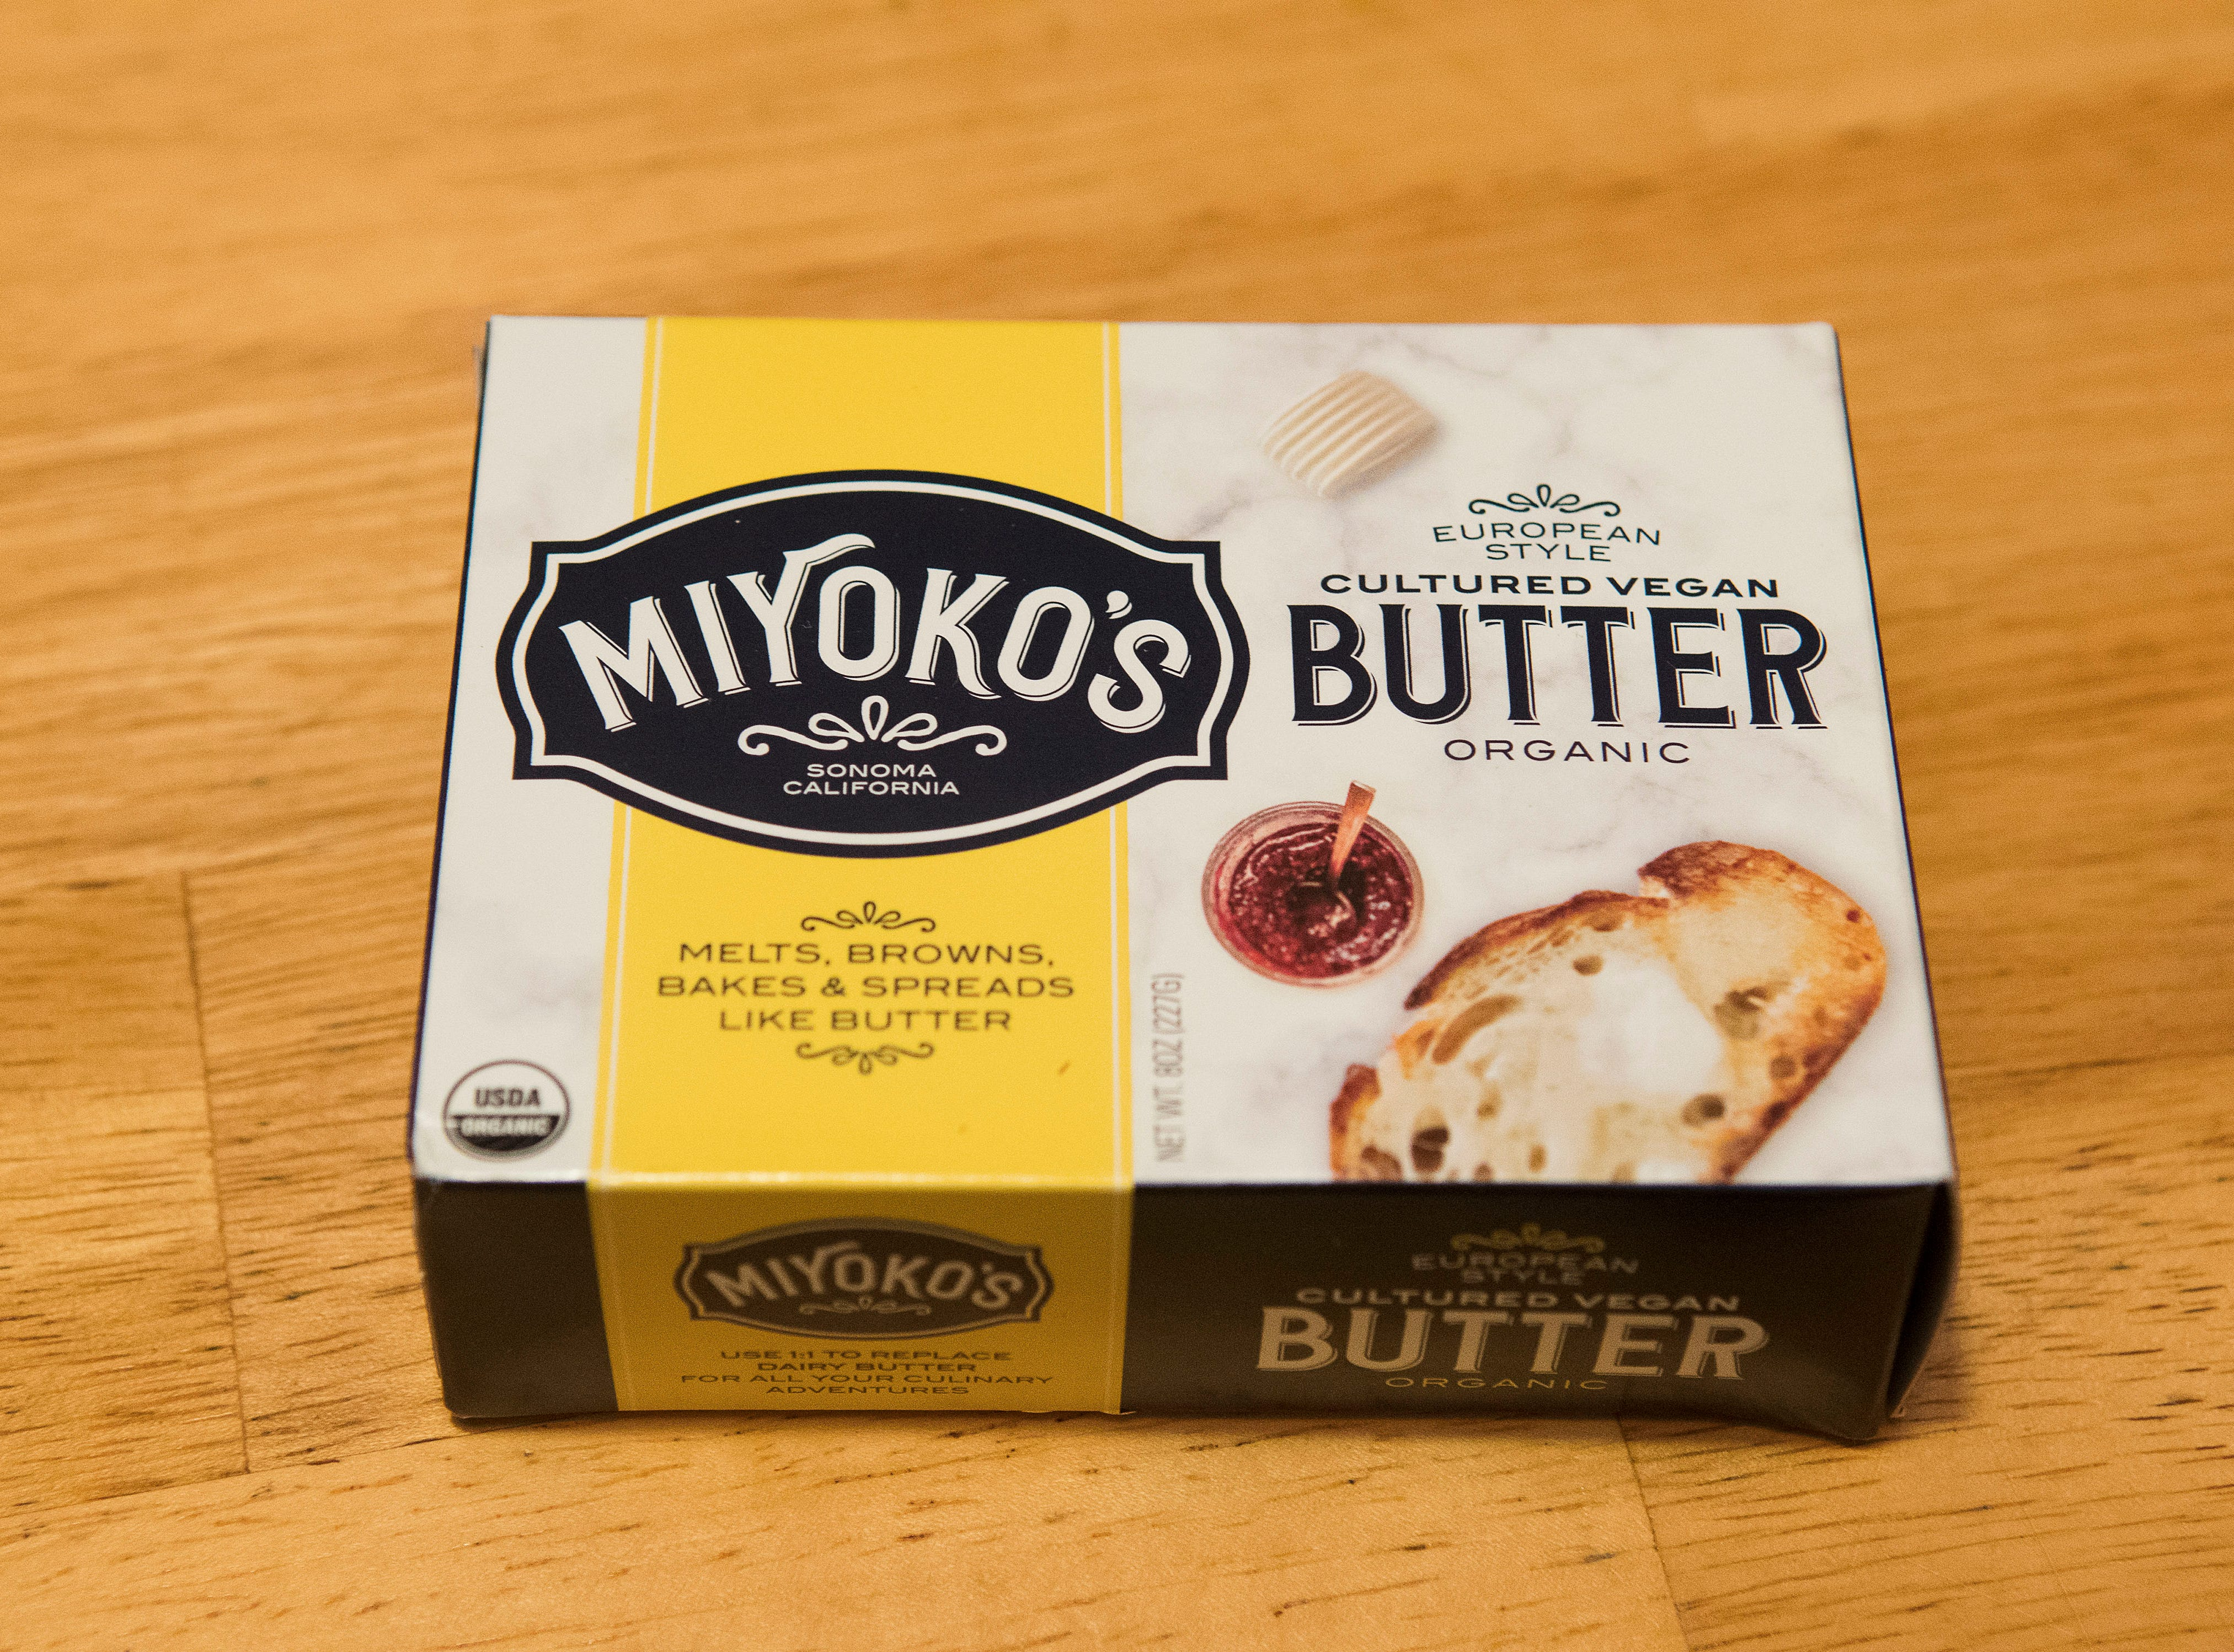 Vegan European style butter found at Whole Food's in Louisville.